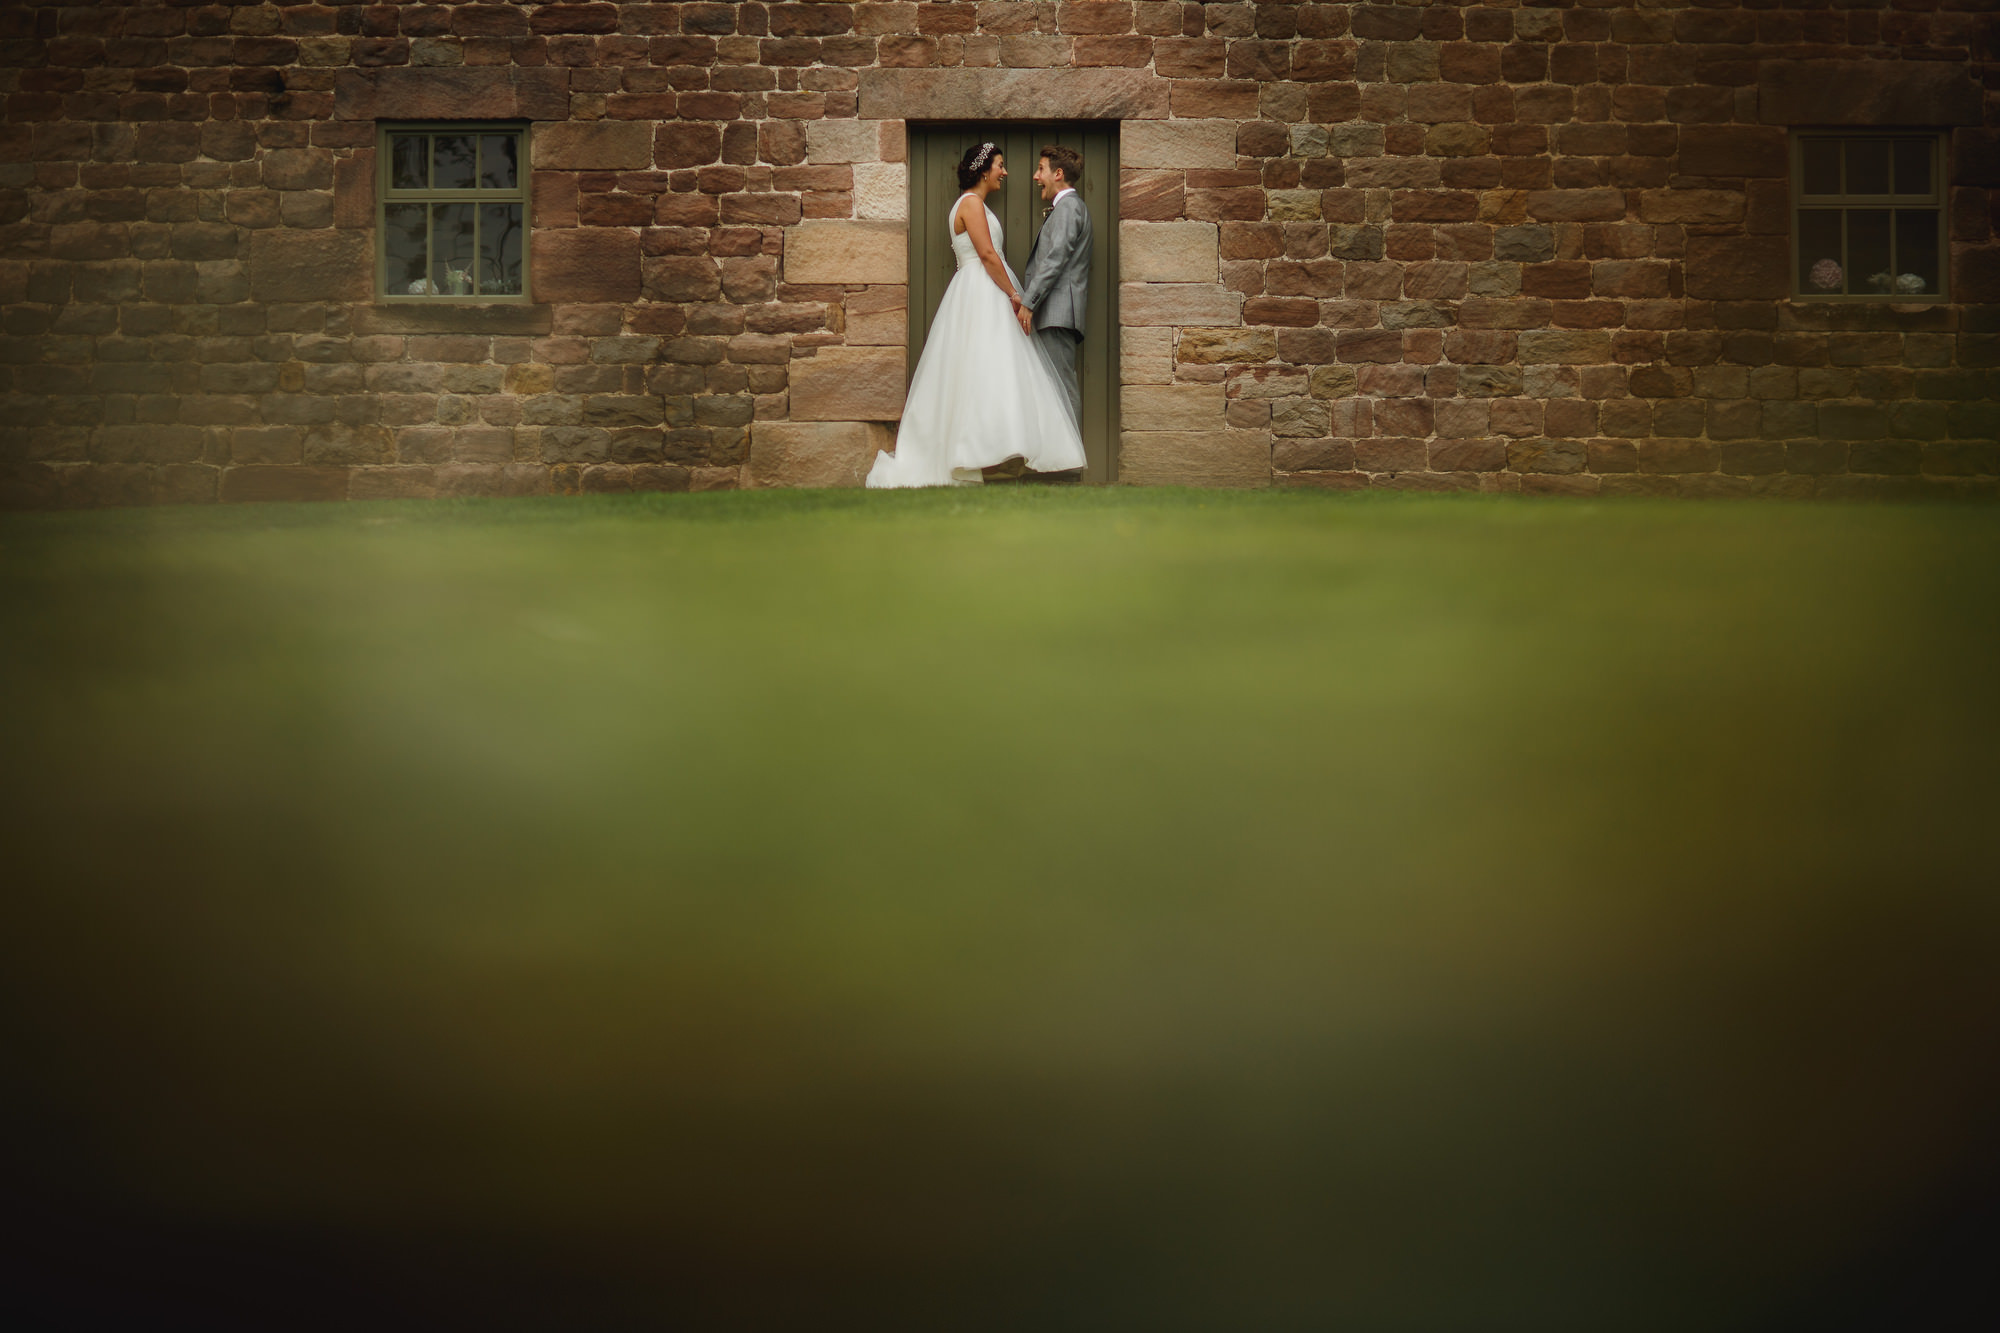 The Ashes Endon Wedding Photography Kate Ashley ARJ